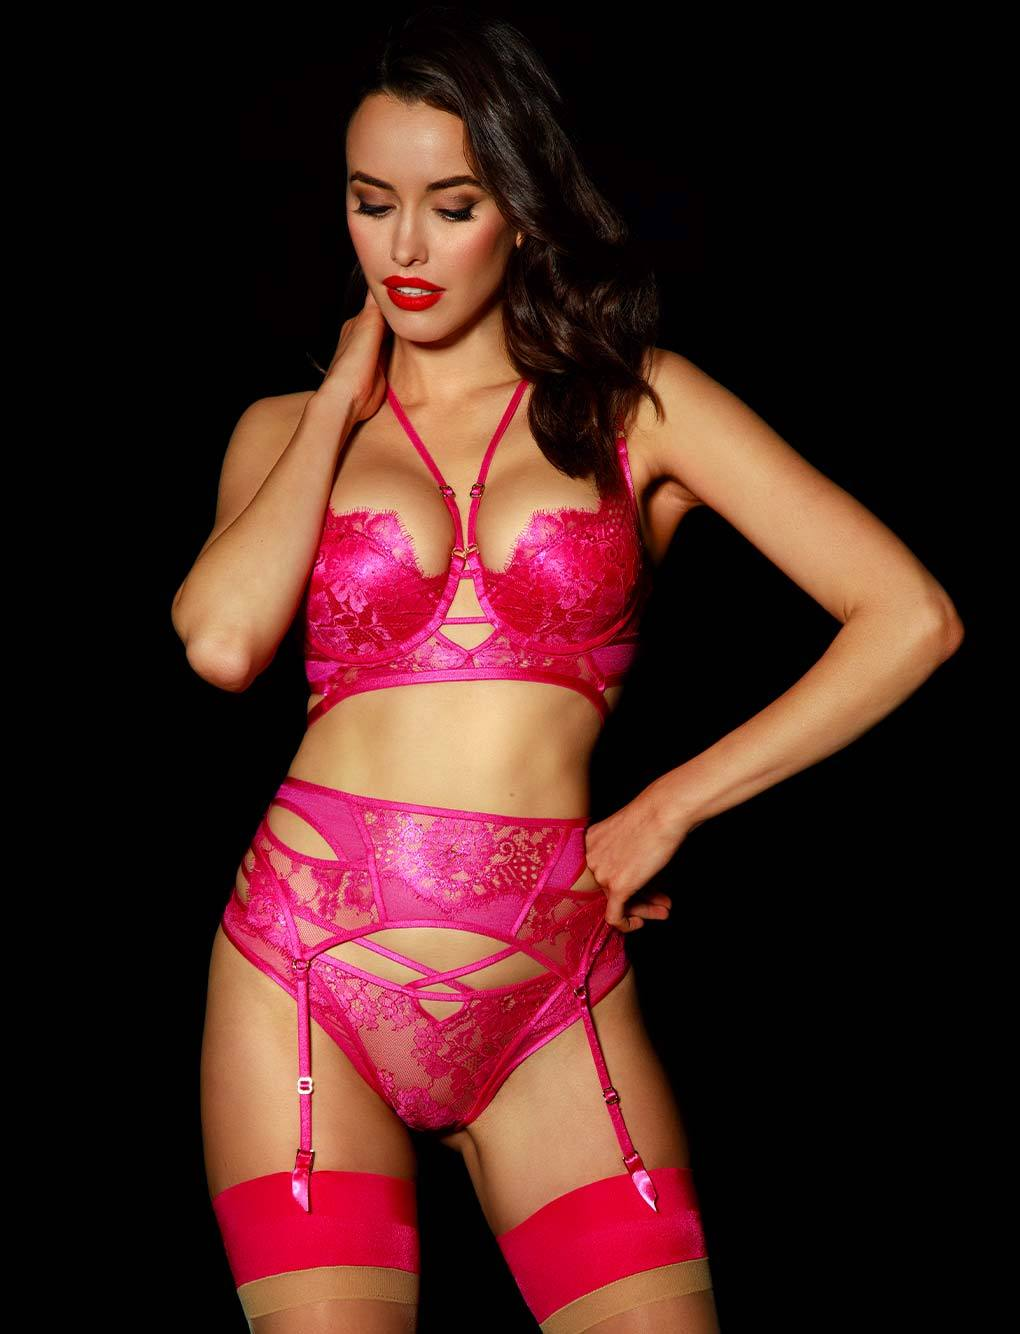 Vanessa Pink Suspender | Shop Lace Suspenders | Honey Birdette